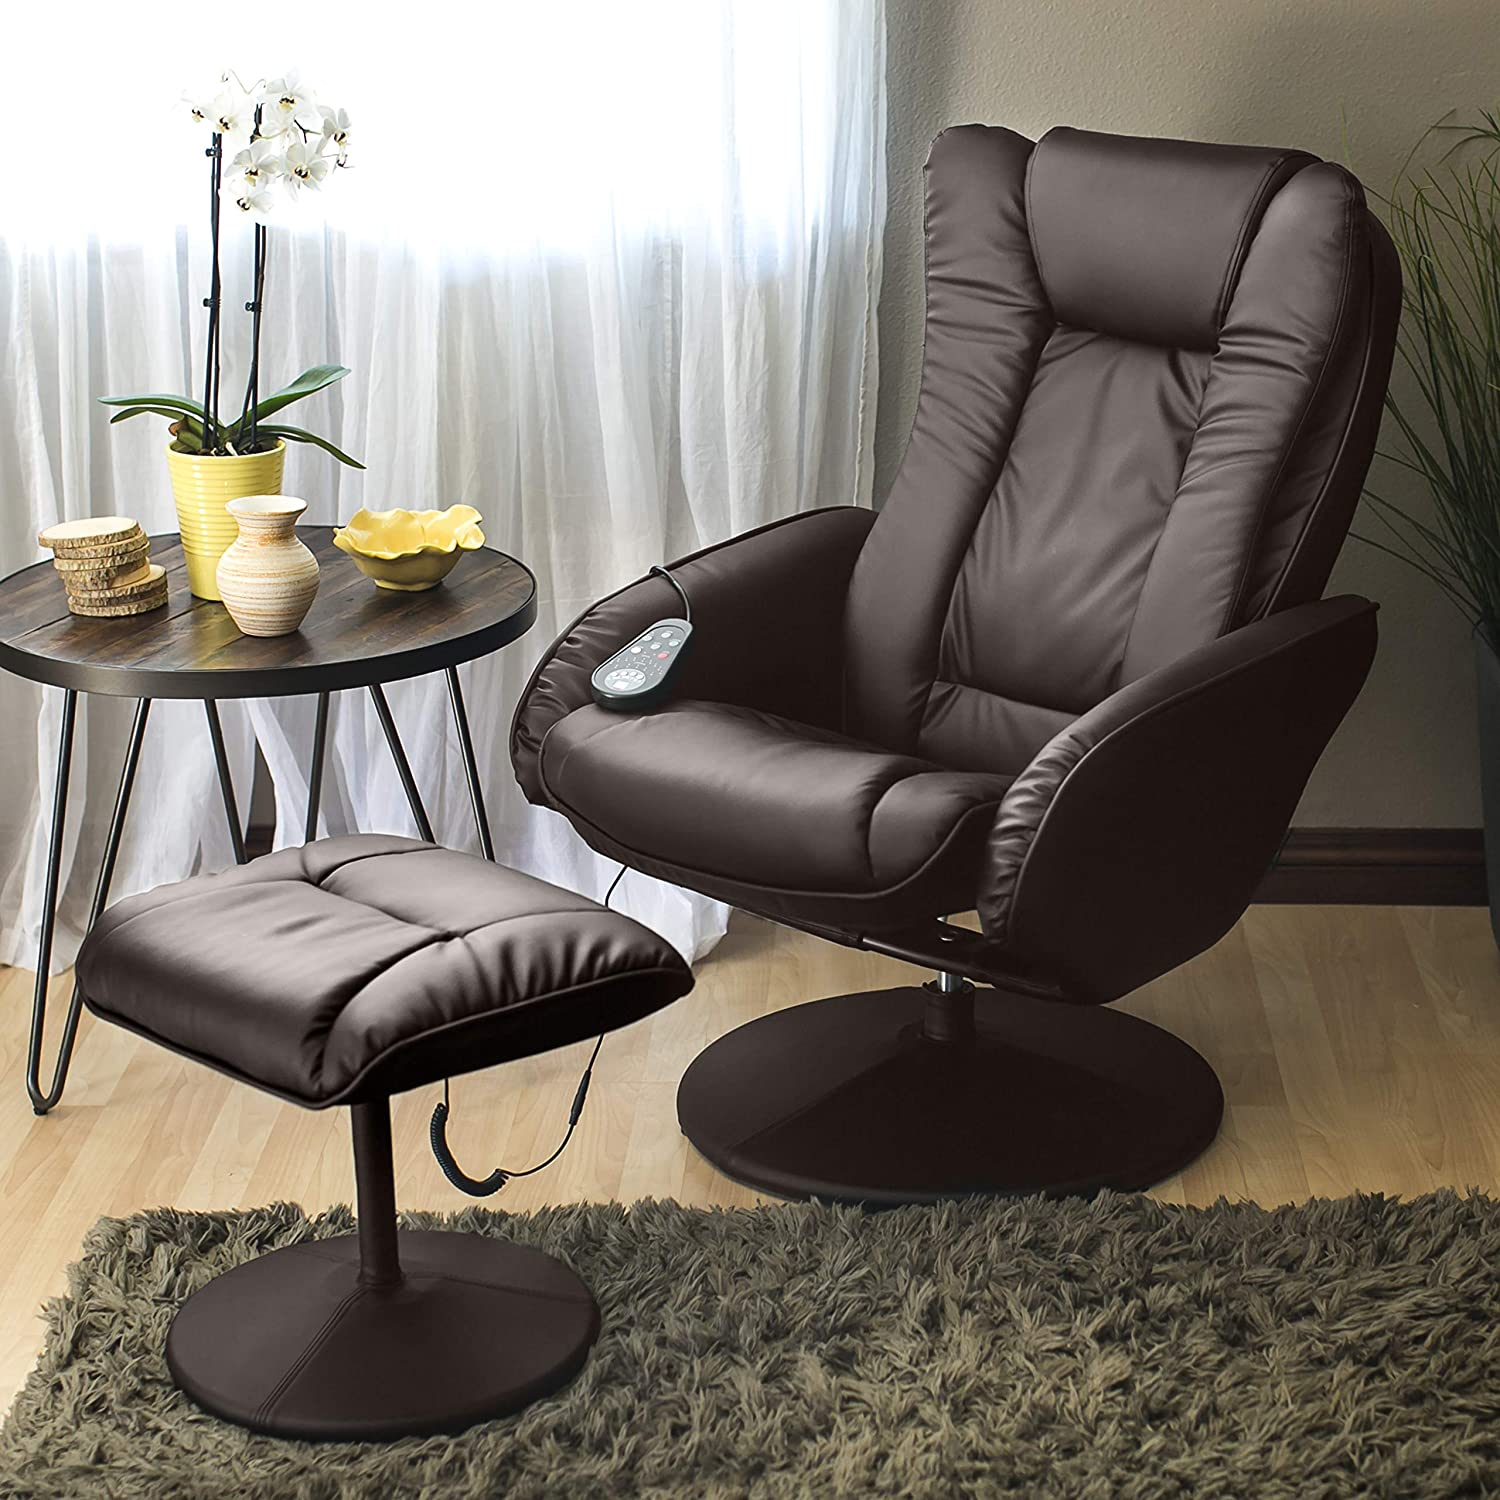 Best Choice Products Recliner Massage Chair